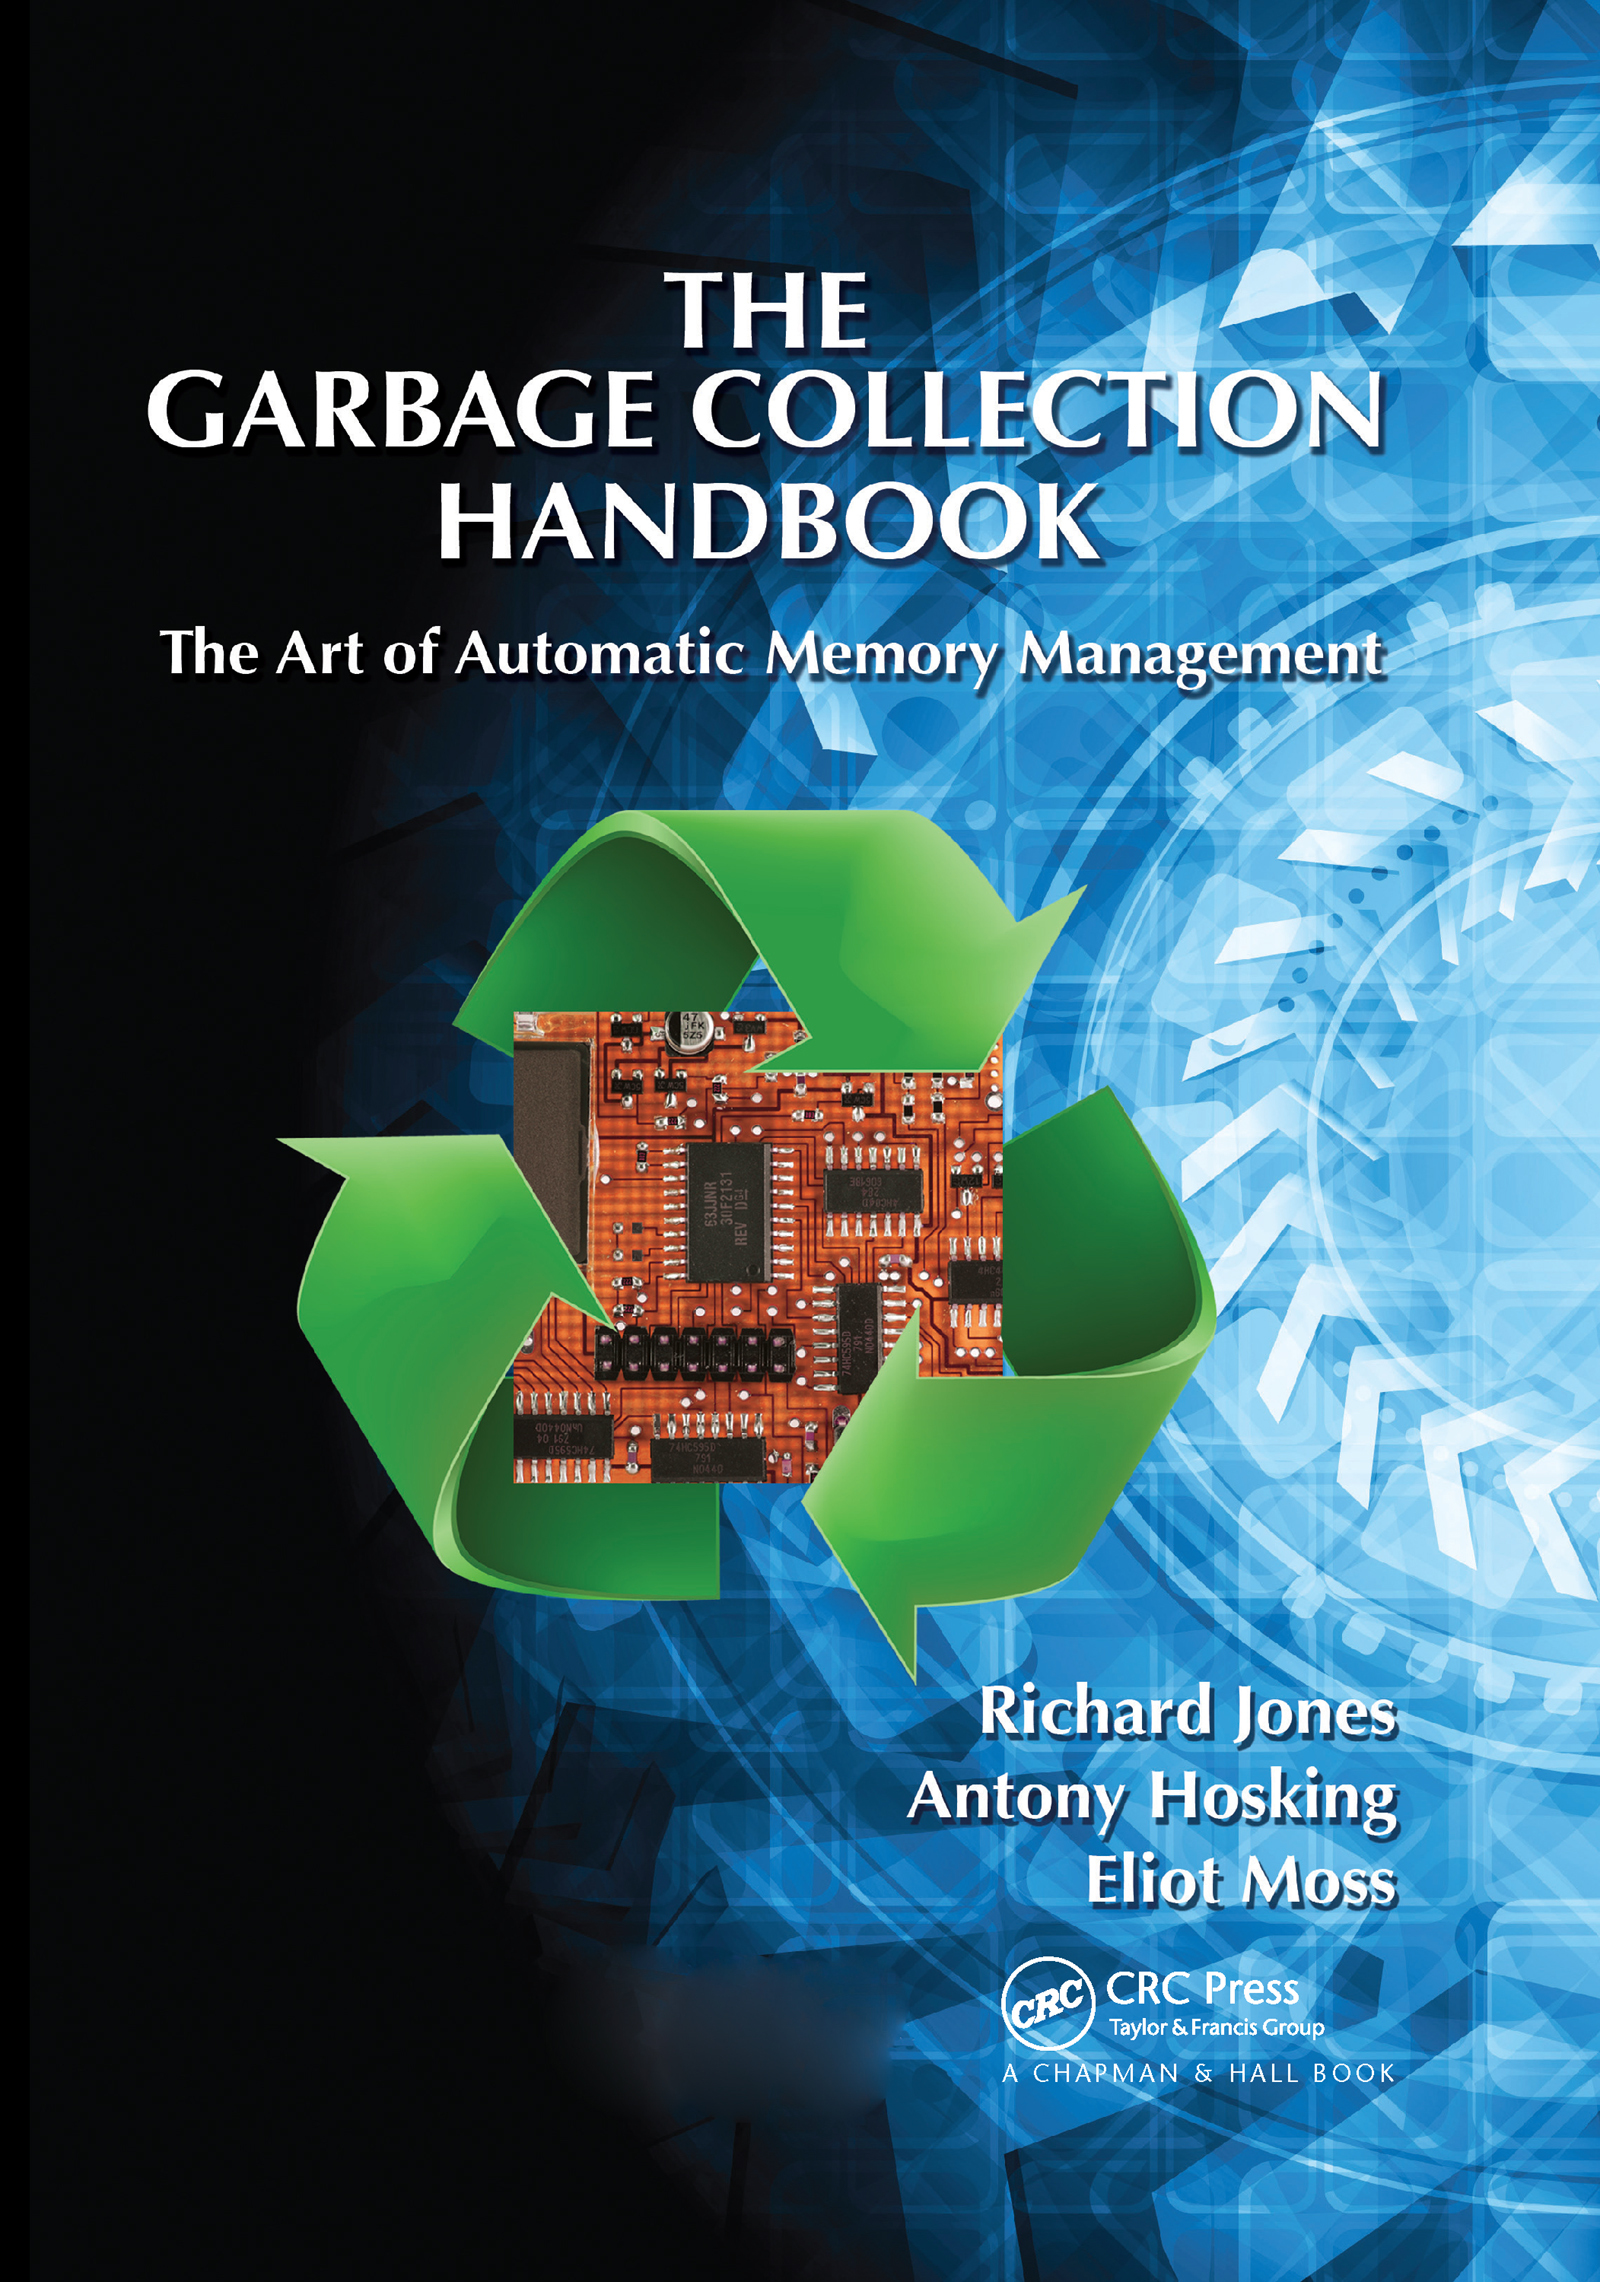 The Garbage Collection Handbook: The Art of Automatic Memory Management book cover